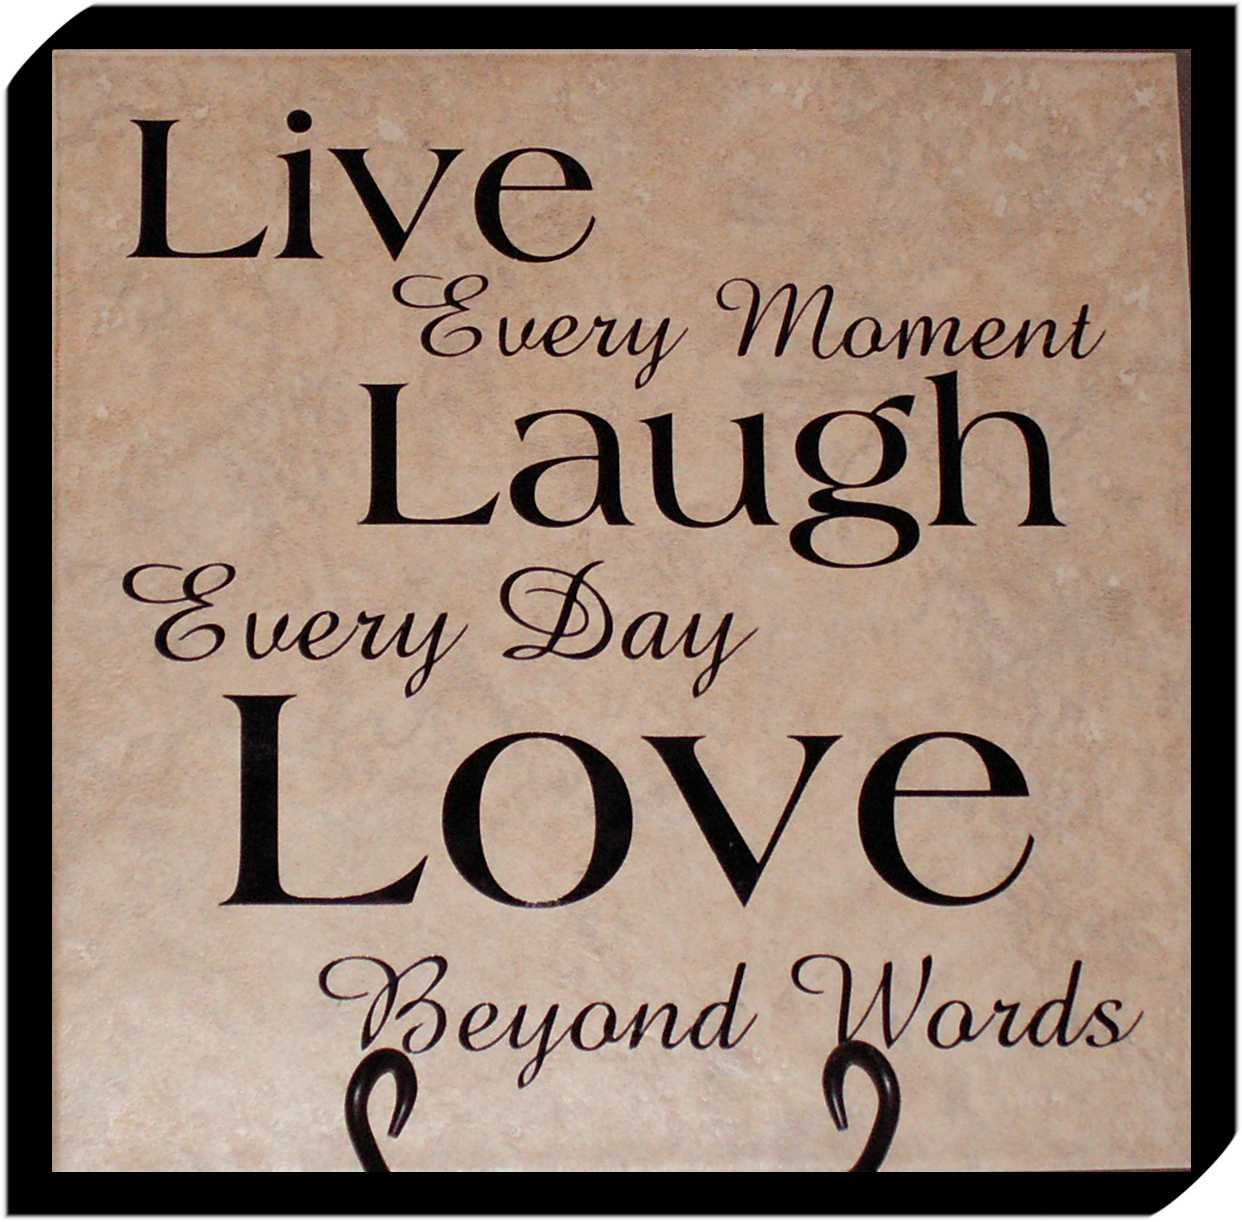 Love Quotes Pictures: Live Laugh Love Quotes And Sayings. QuotesGram